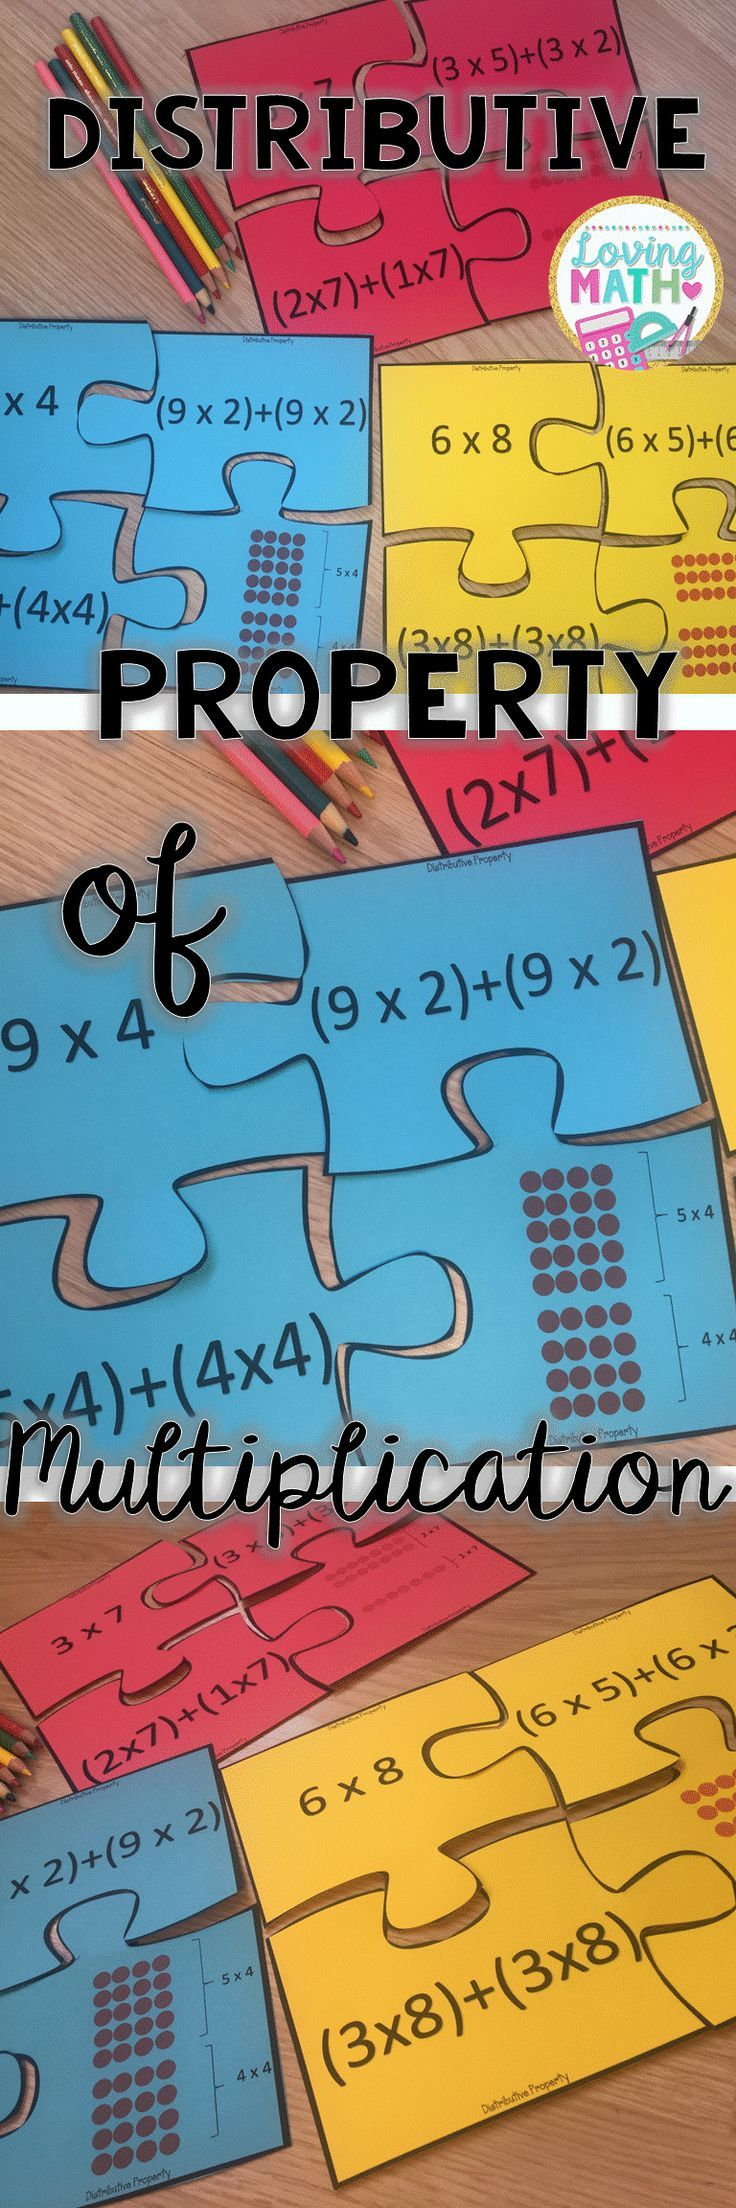 44 best Math - Ratios and Proportions images on Pinterest | Teaching ...